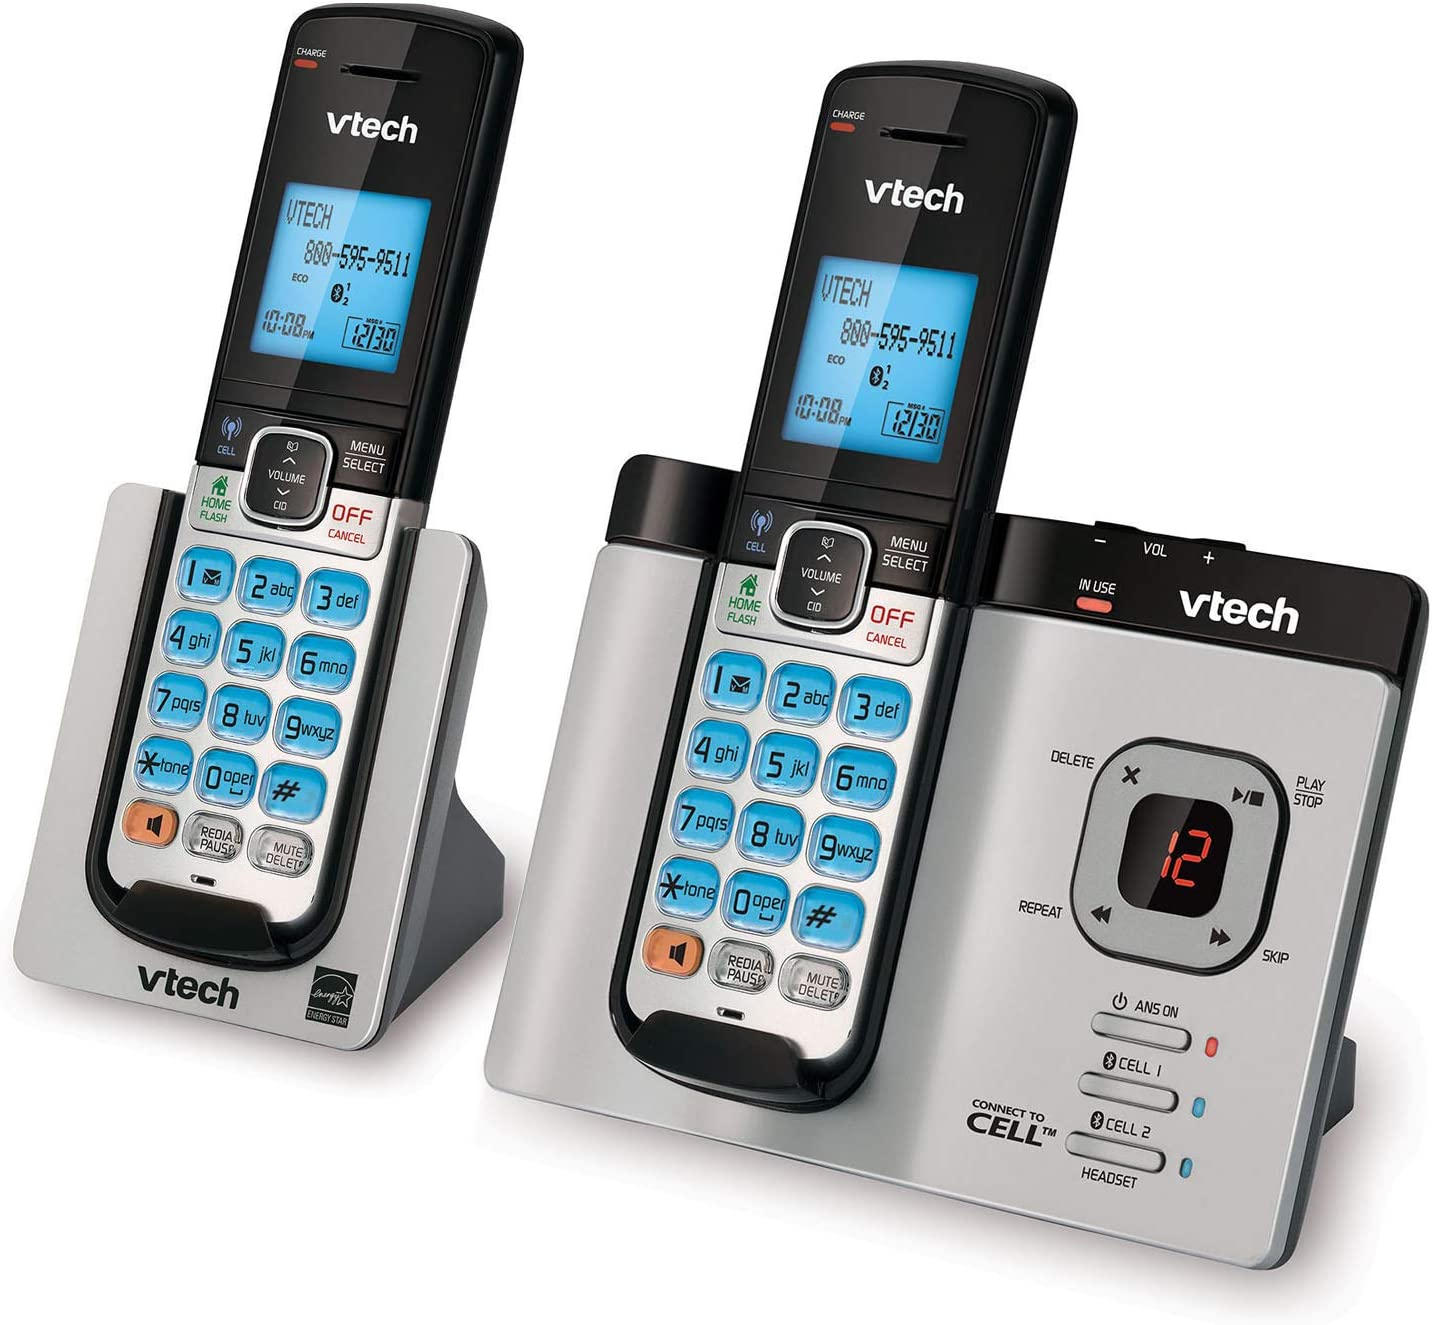 VTech DS6621-2 DECT 6.0 Expandable Cordless Phone with Bluetooth Connect to Cell and Answering System, Silver/Black with 2 Handsets : Electronics